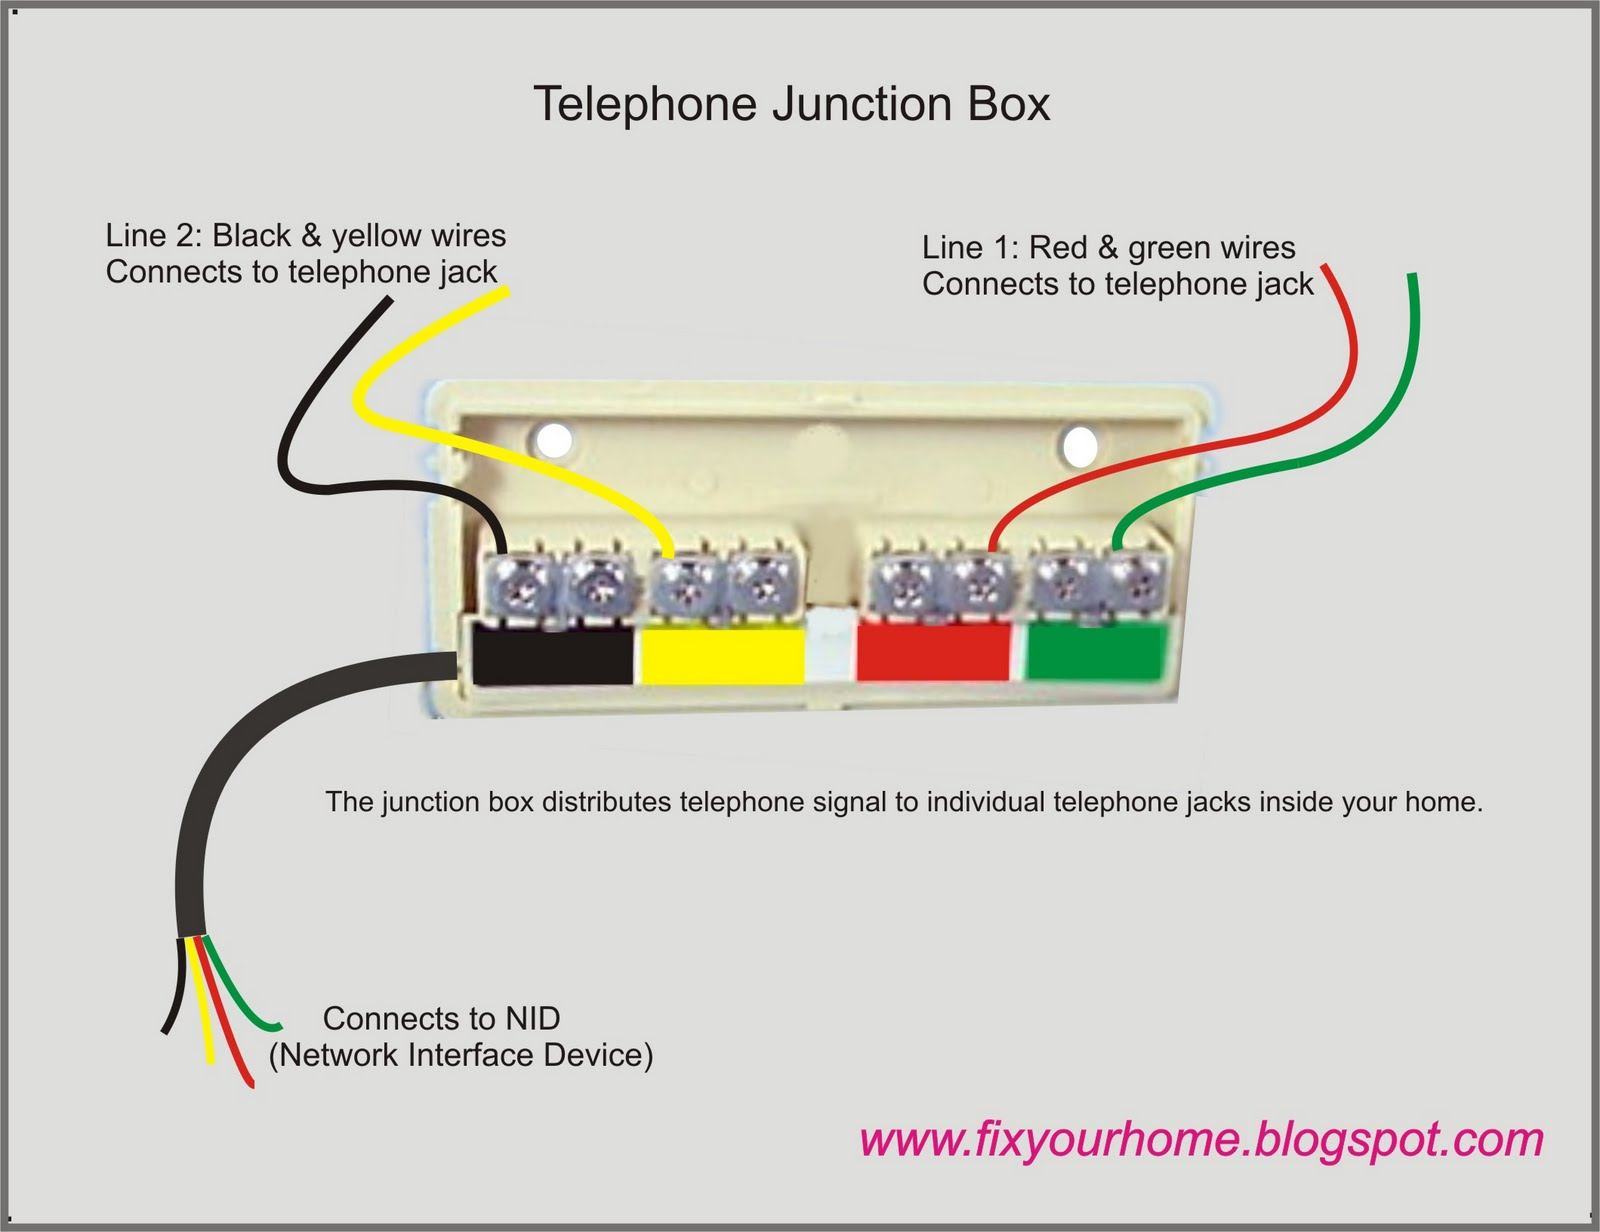 Rj45 Phone Wiring Diagram Australia Simple Guide About Female Connector Fix Your Home Telephone Junction Box